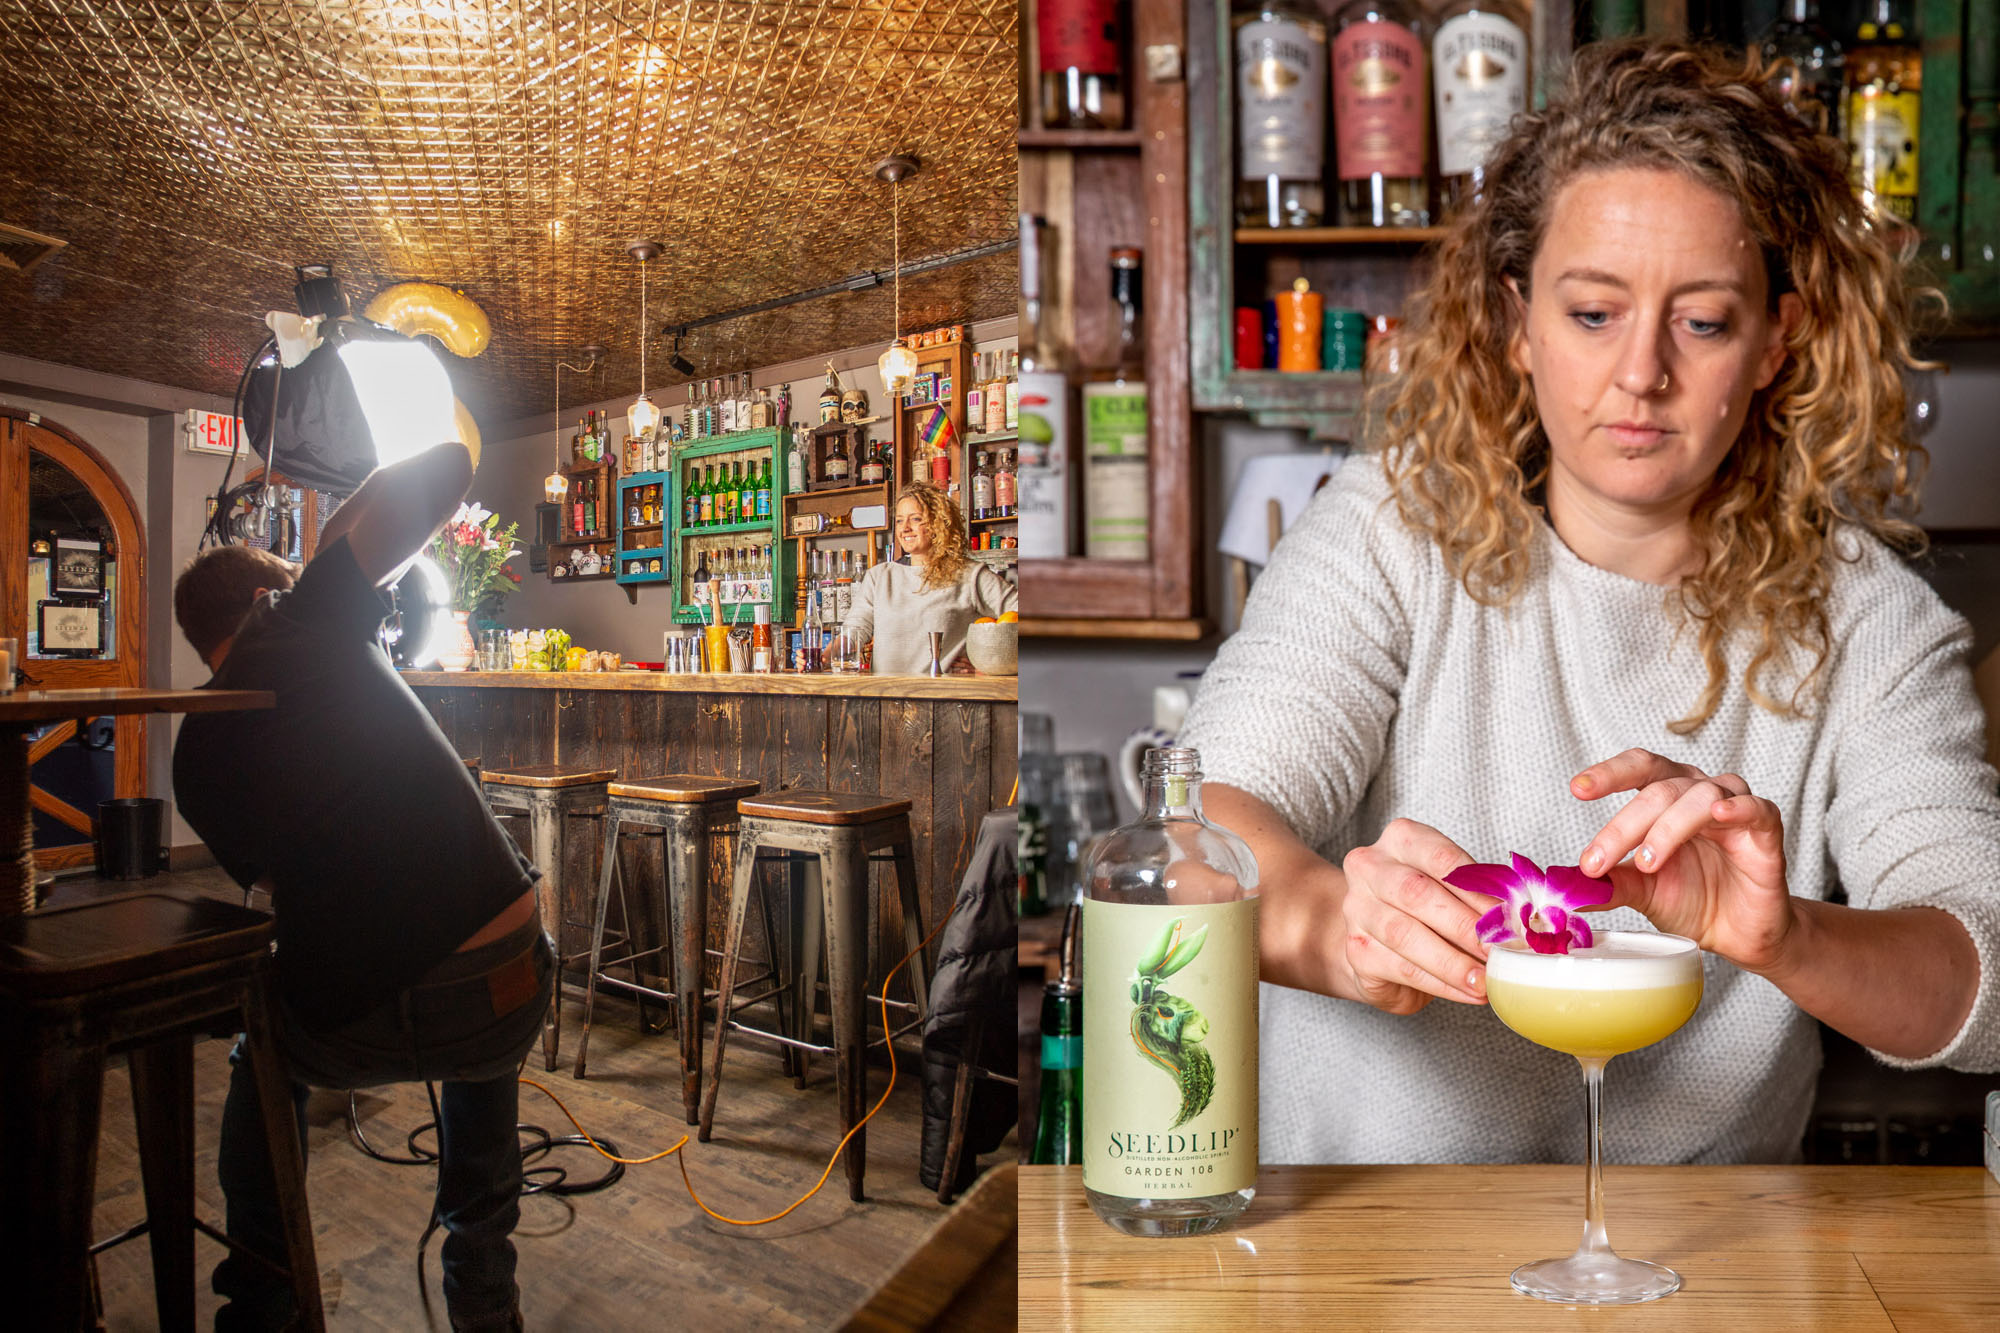 A bartender serving a cocktail and a behind the scenes of that photograph being made